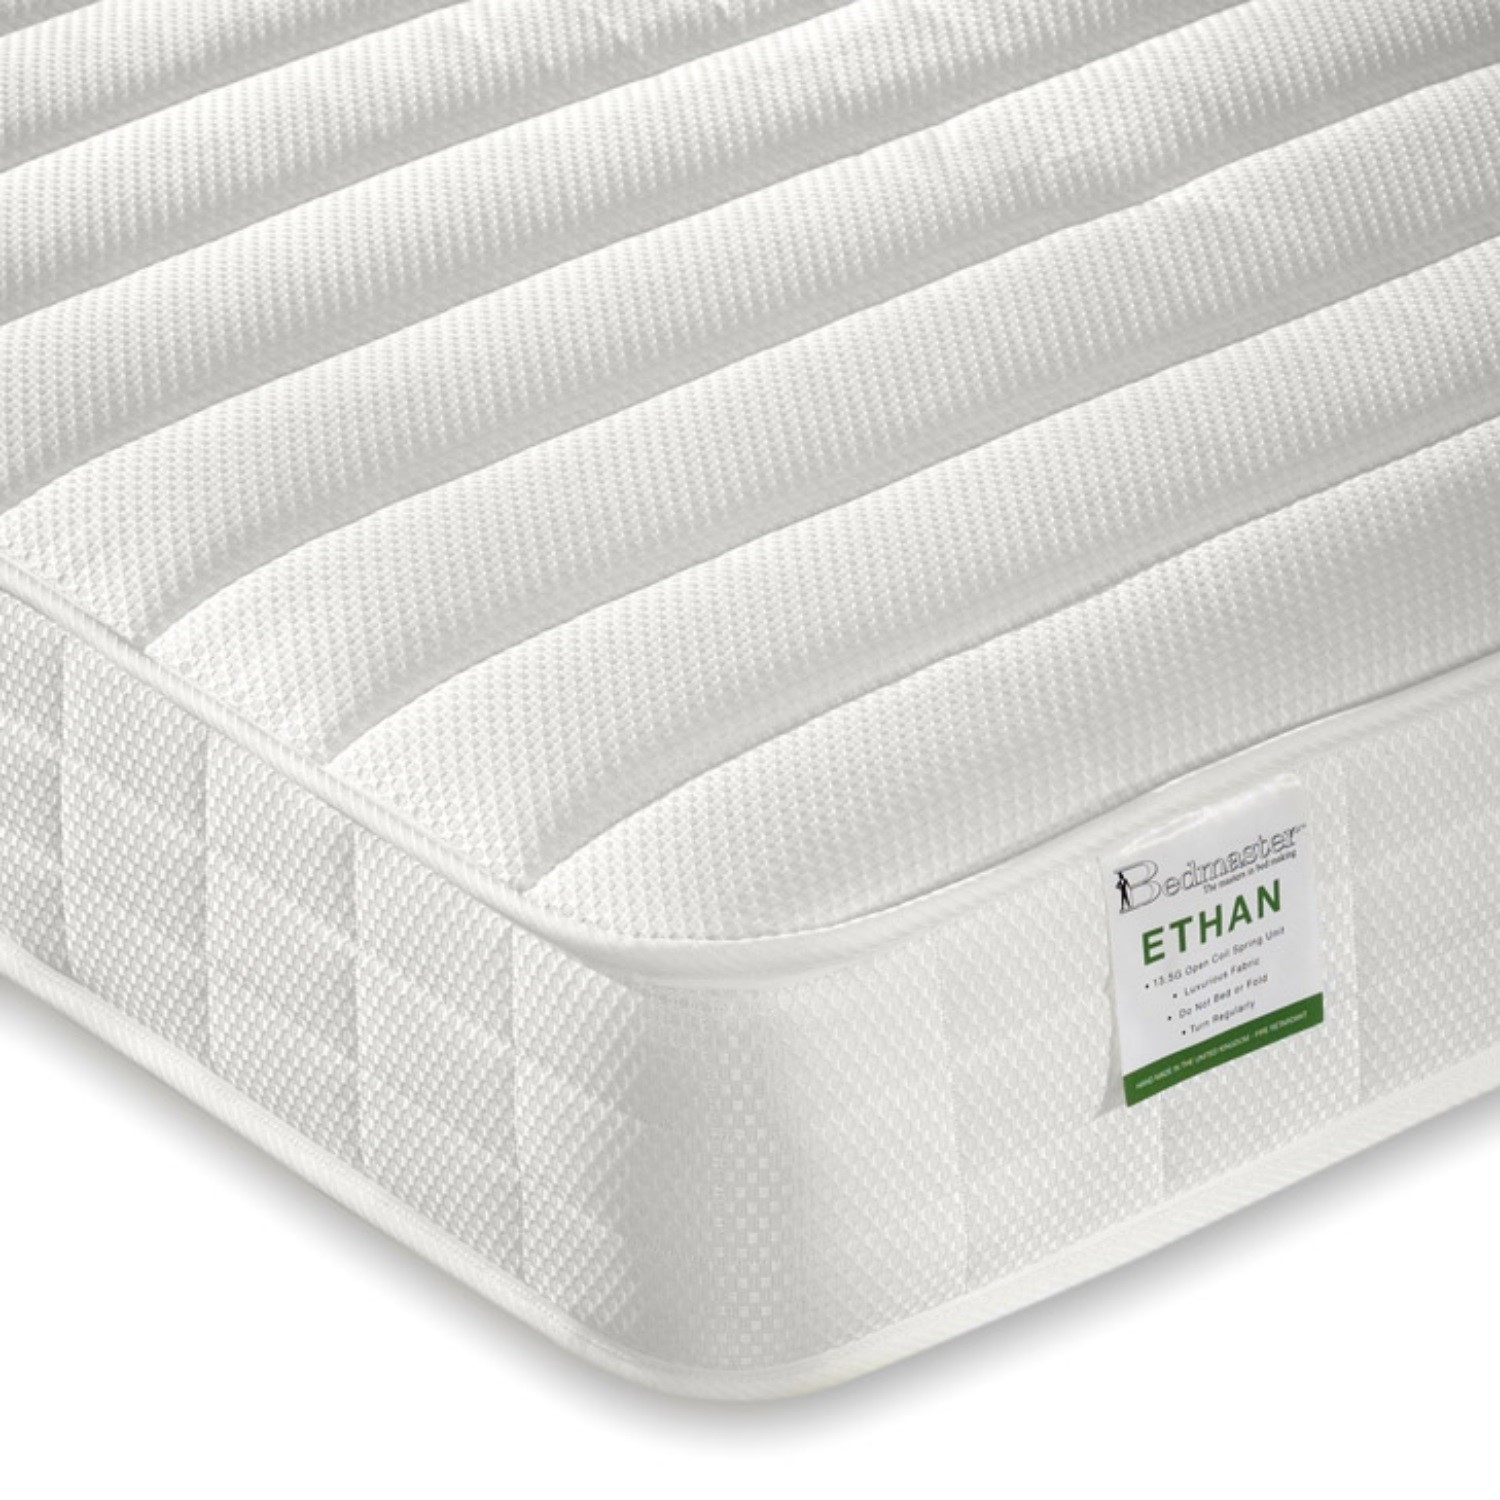 Ethan luxury quilted coil sprung small double mattress - medium firmness